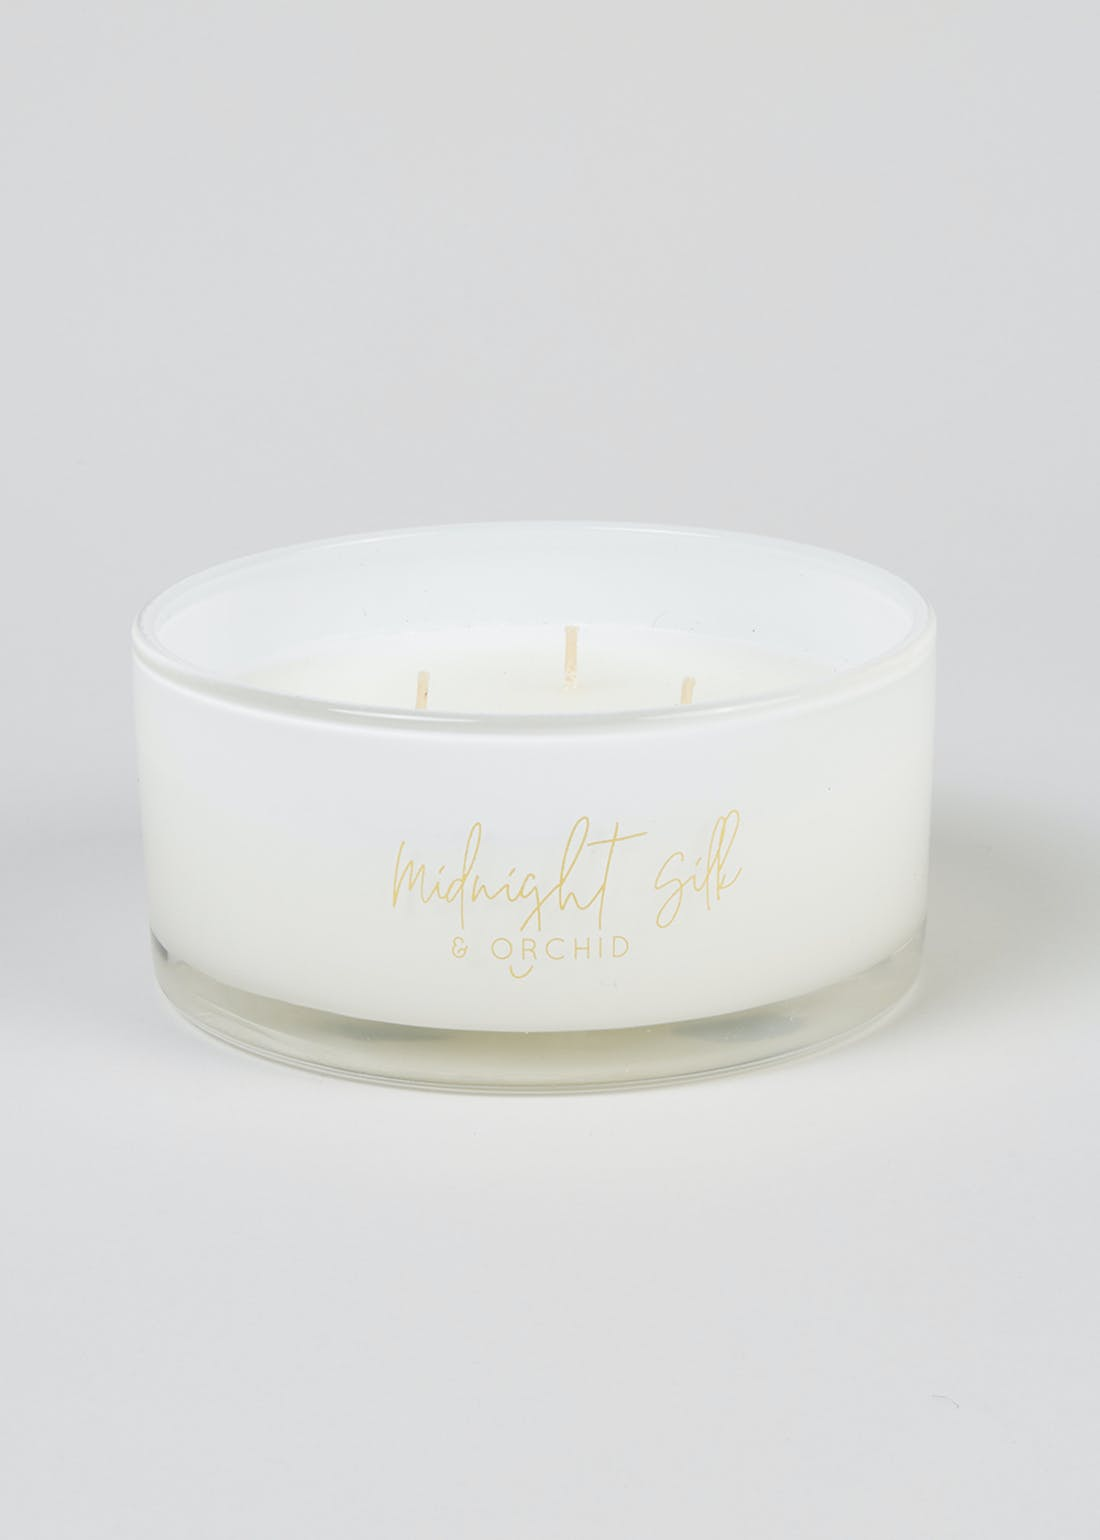 Midnight Silk & Orchid Luxury Candle (16cm x 7.5cm)